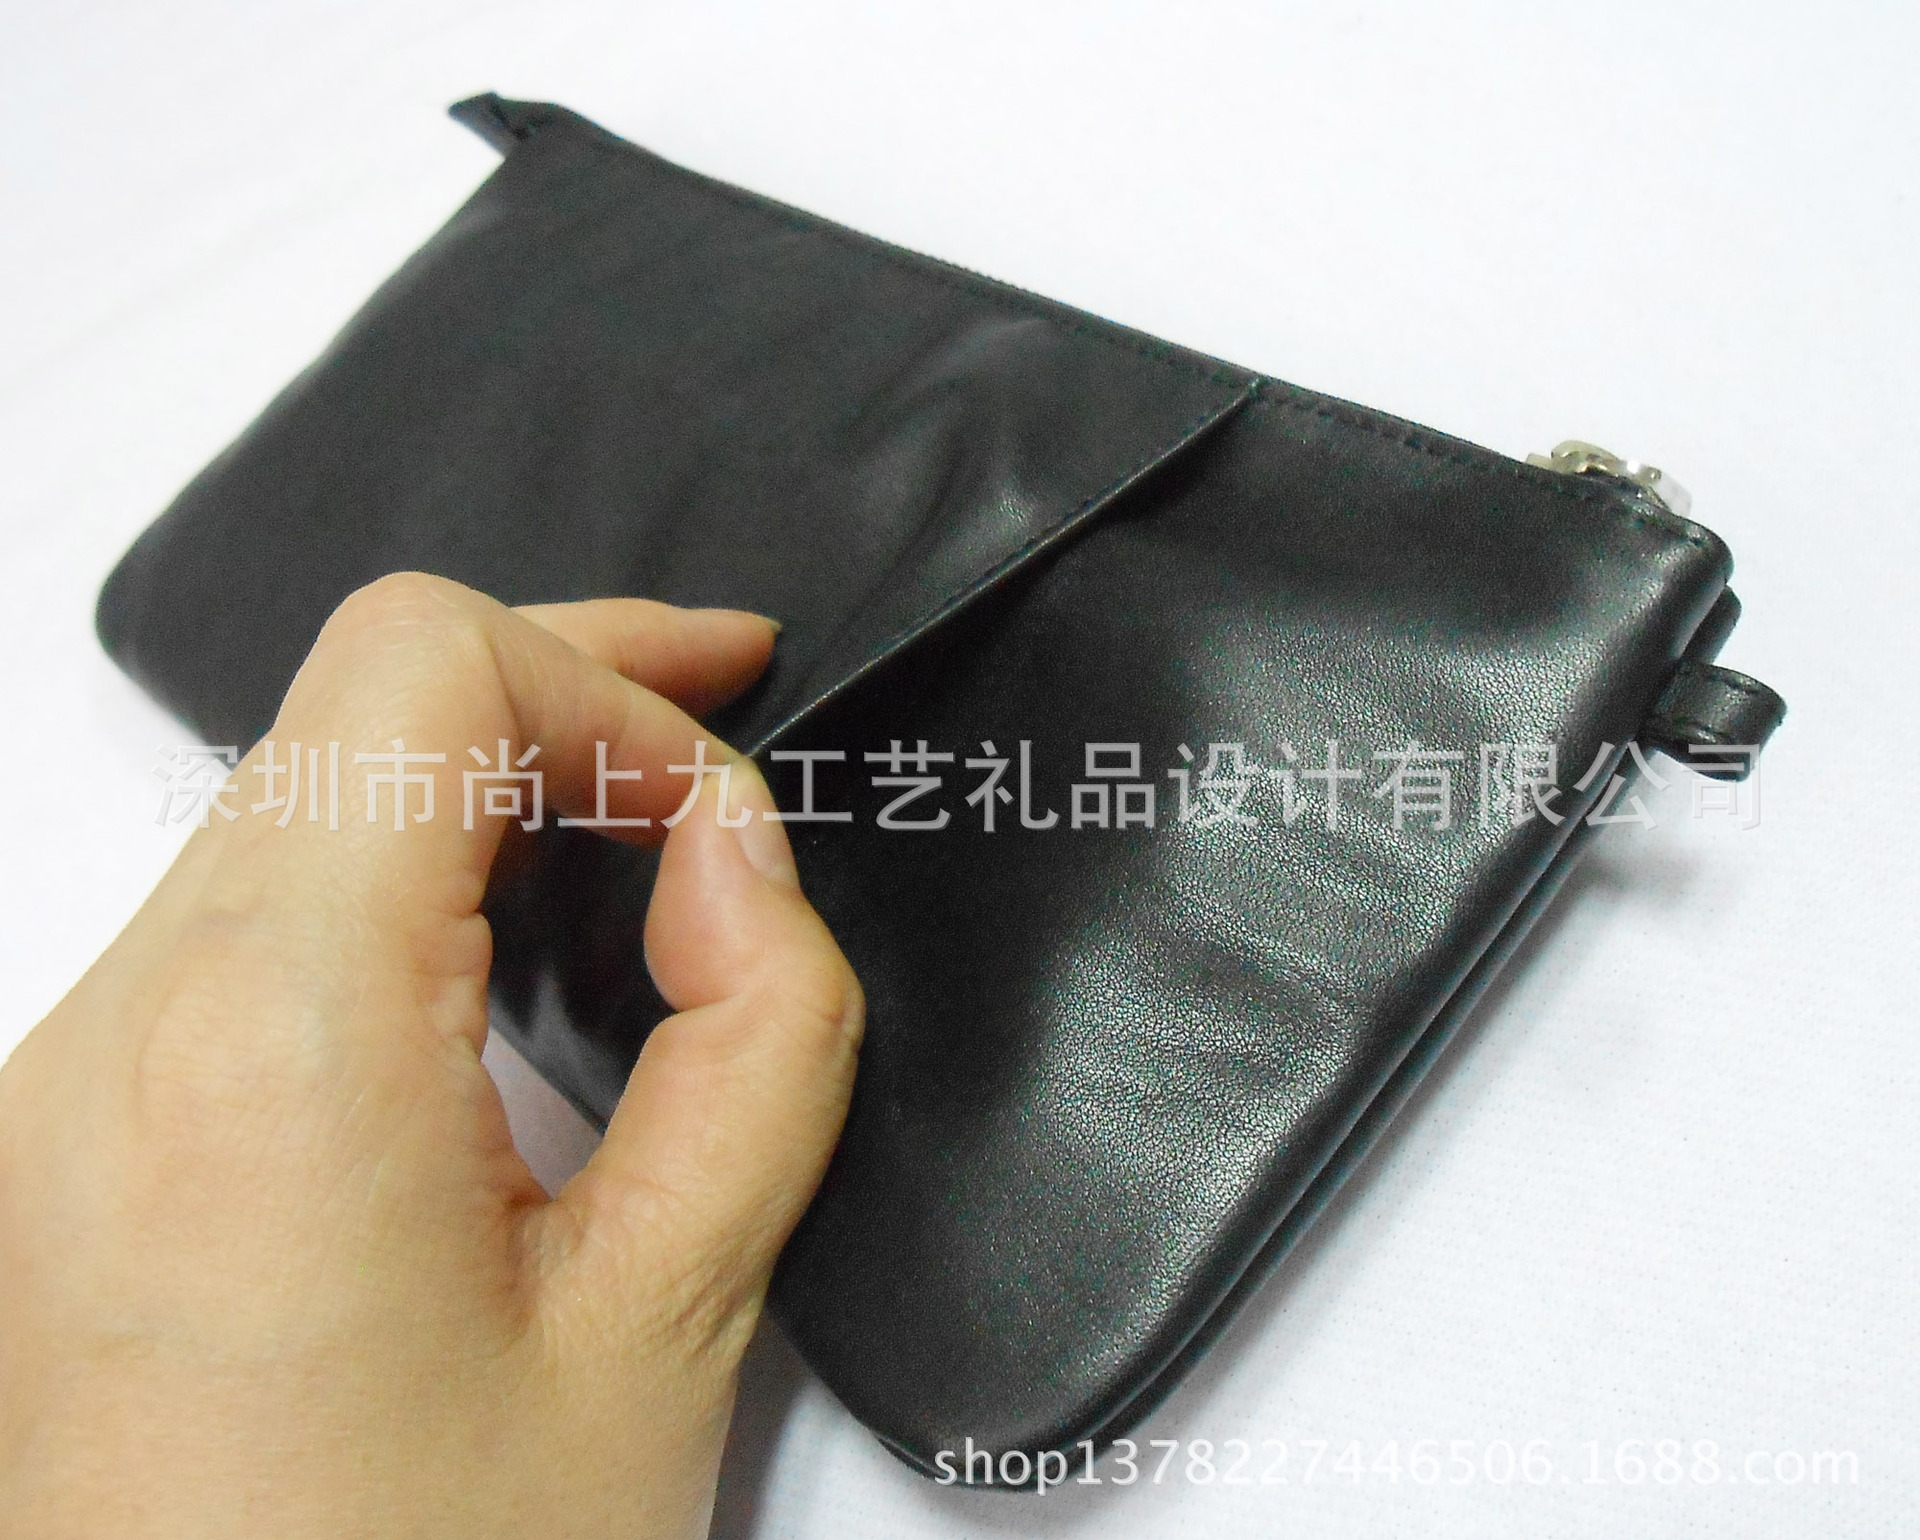 [Shenzhen] Purse Simple Wrist Bag Carrying Key Coin Bag Mobile Phone Bag